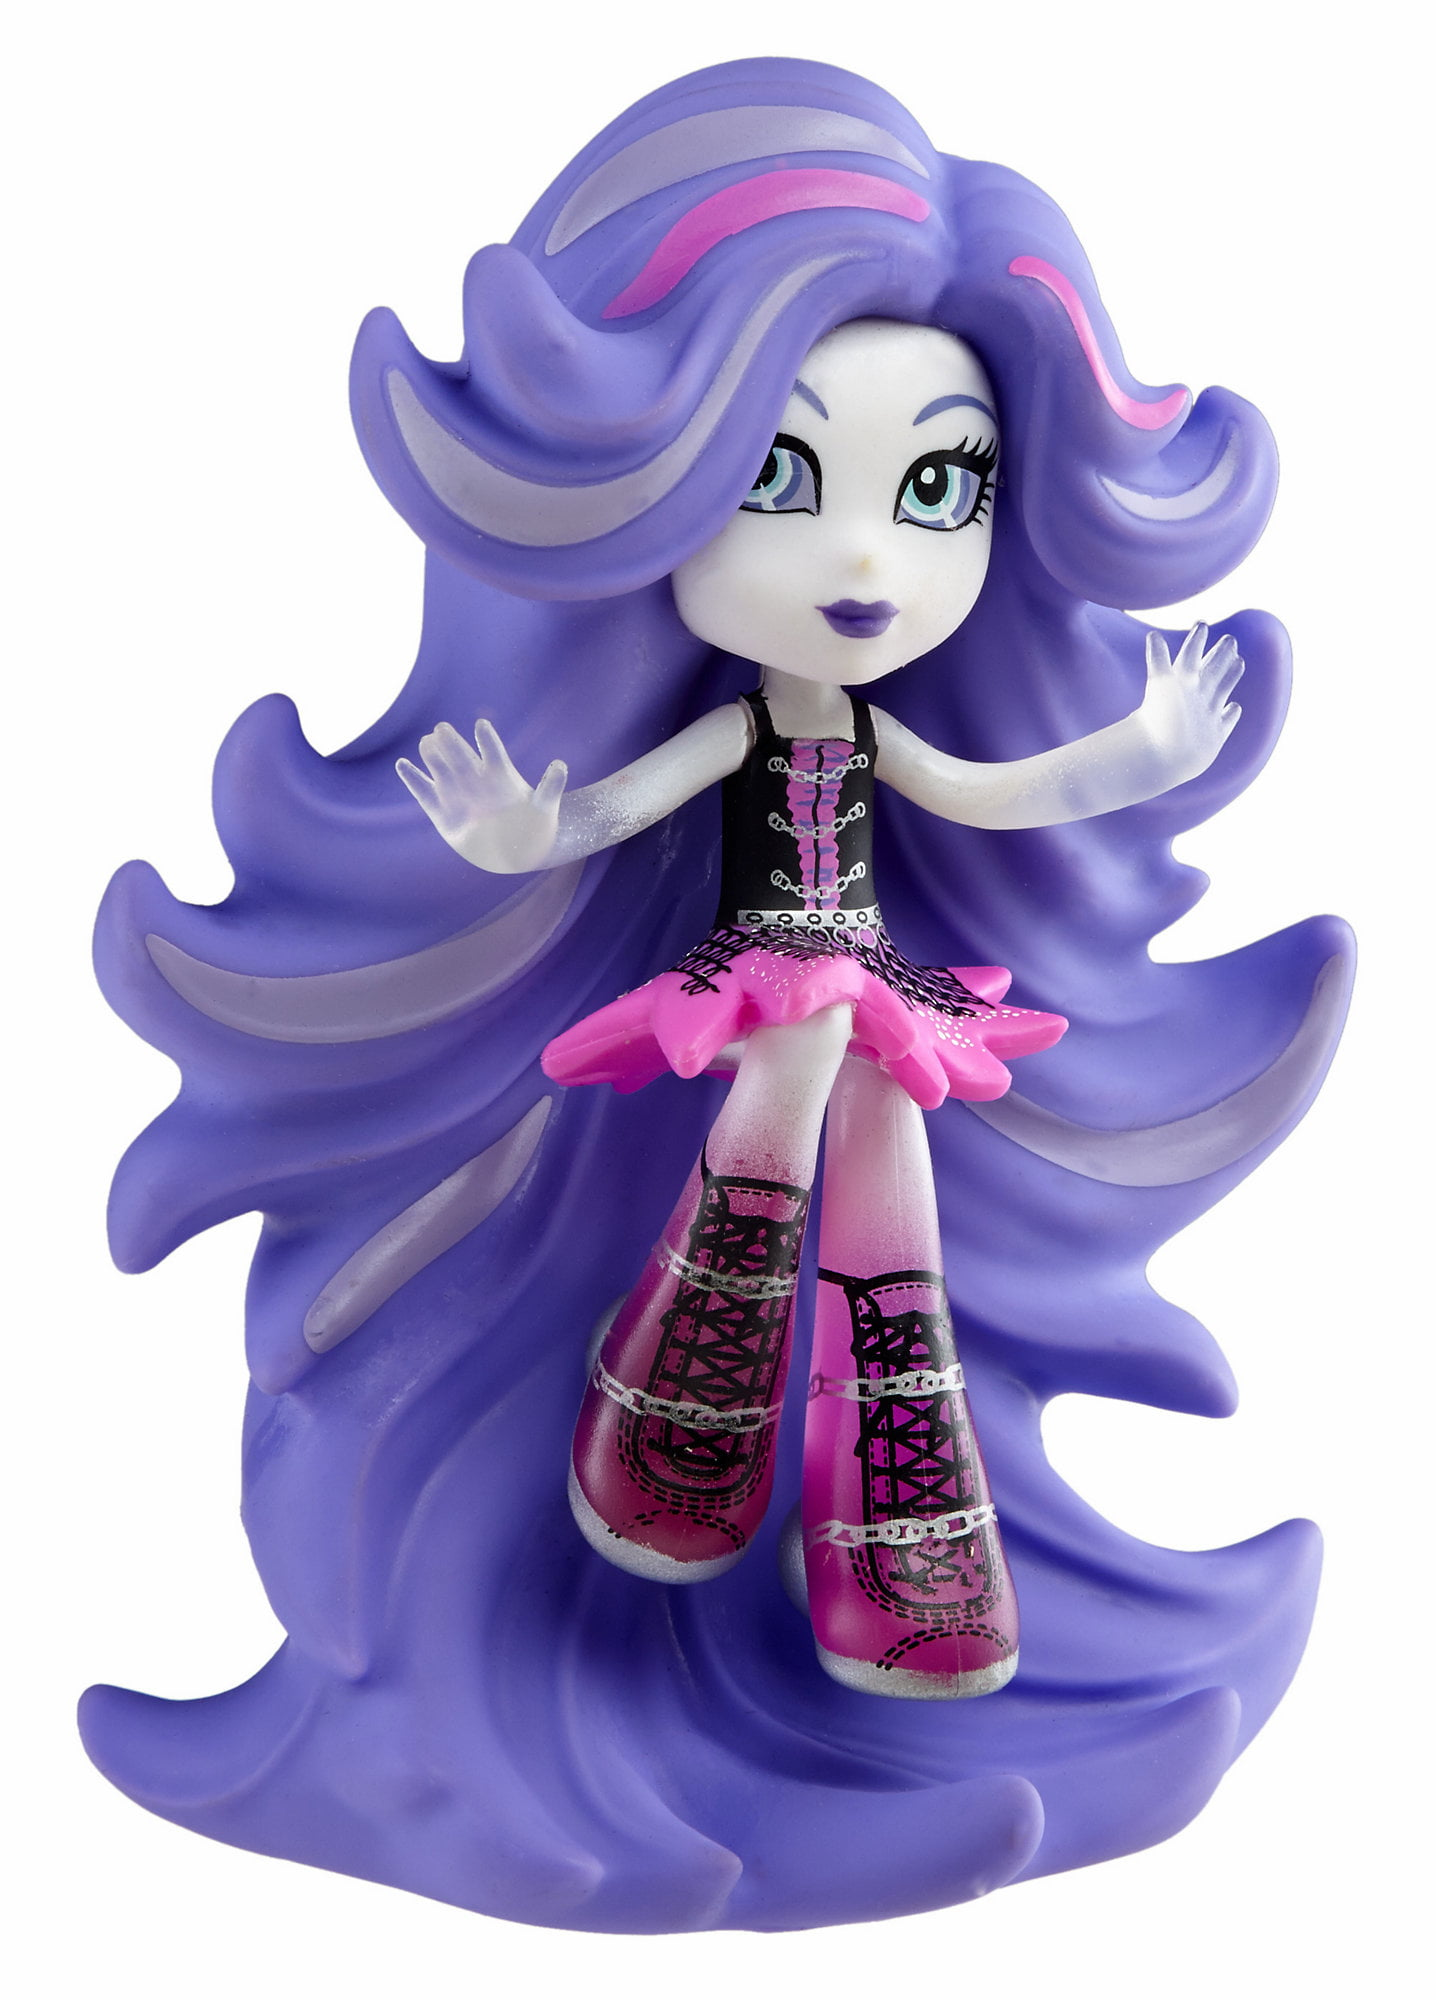 Monster High Spectra Vondergeist Vinyl Figures by Mattel